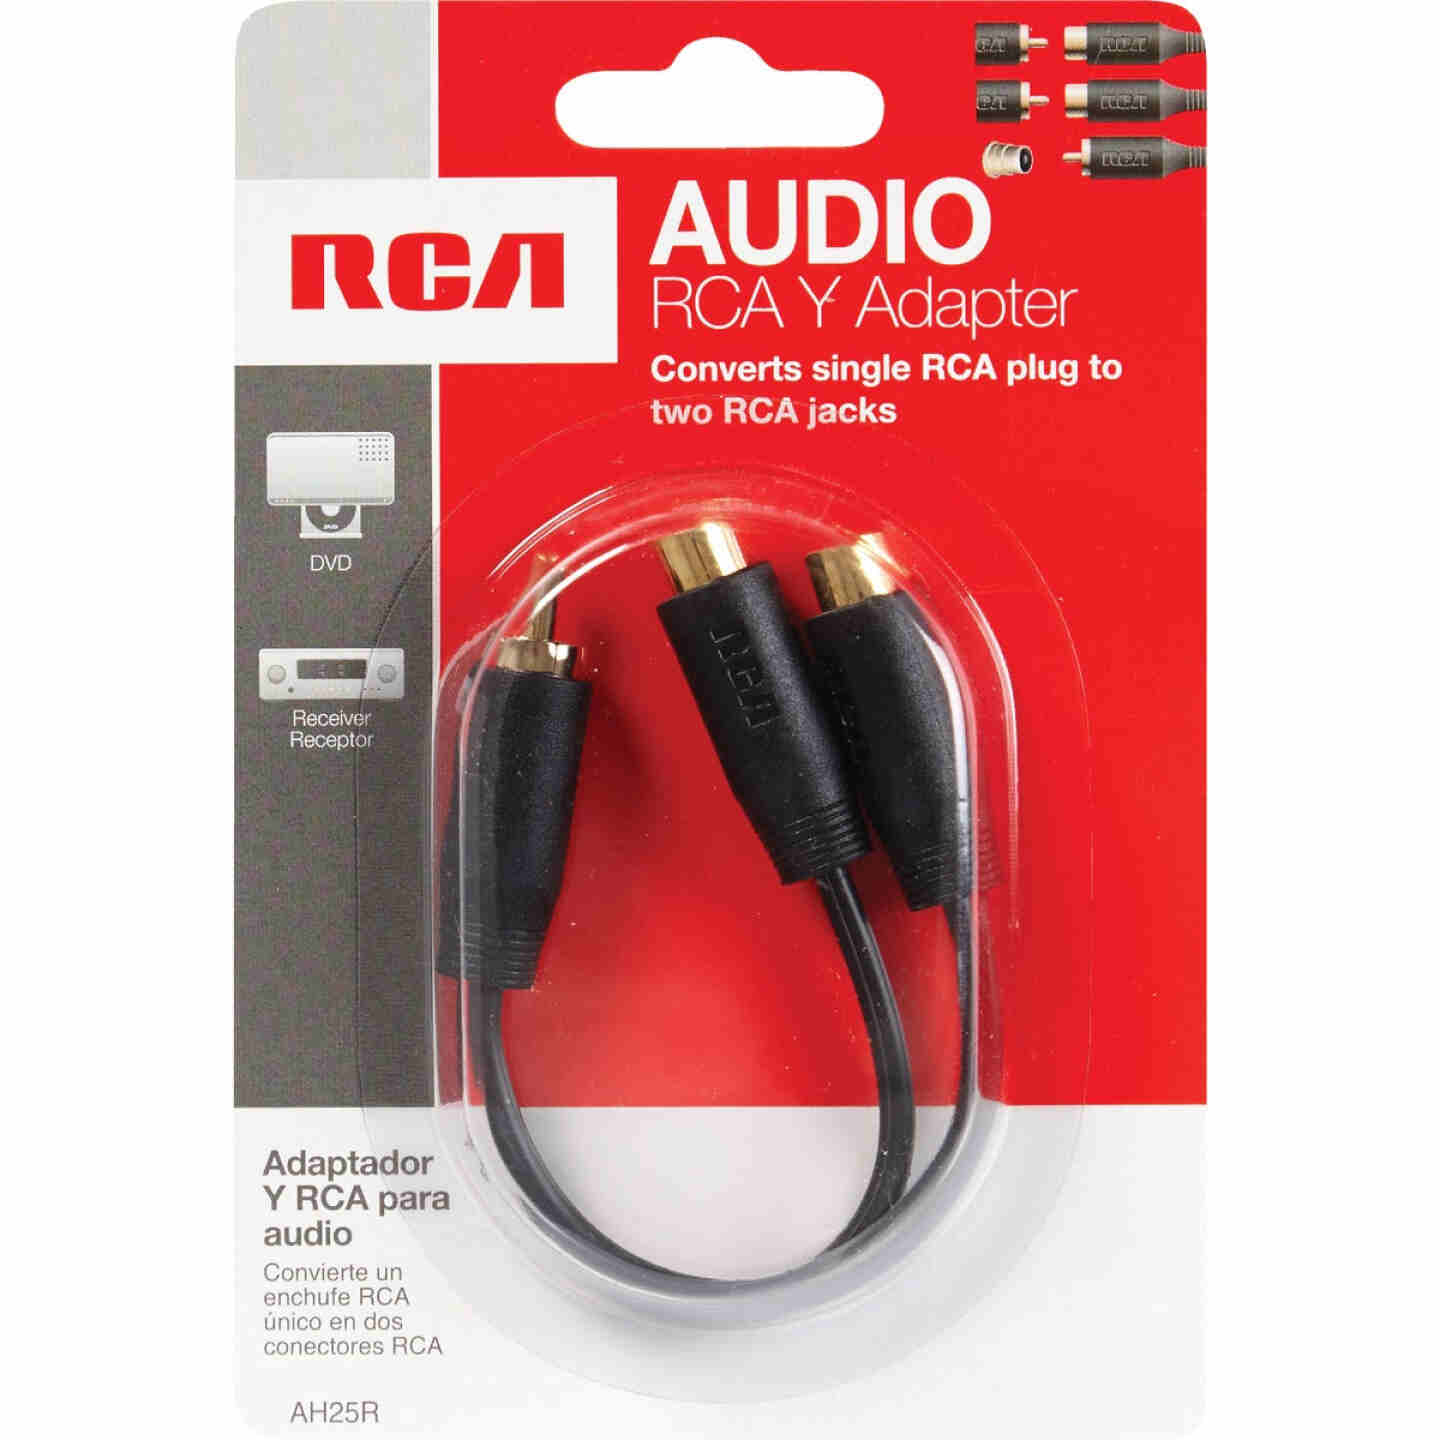 RCA 3 In. Single 3.5 mm Male Double 3.5 mm Female Y-Adapter Image 2